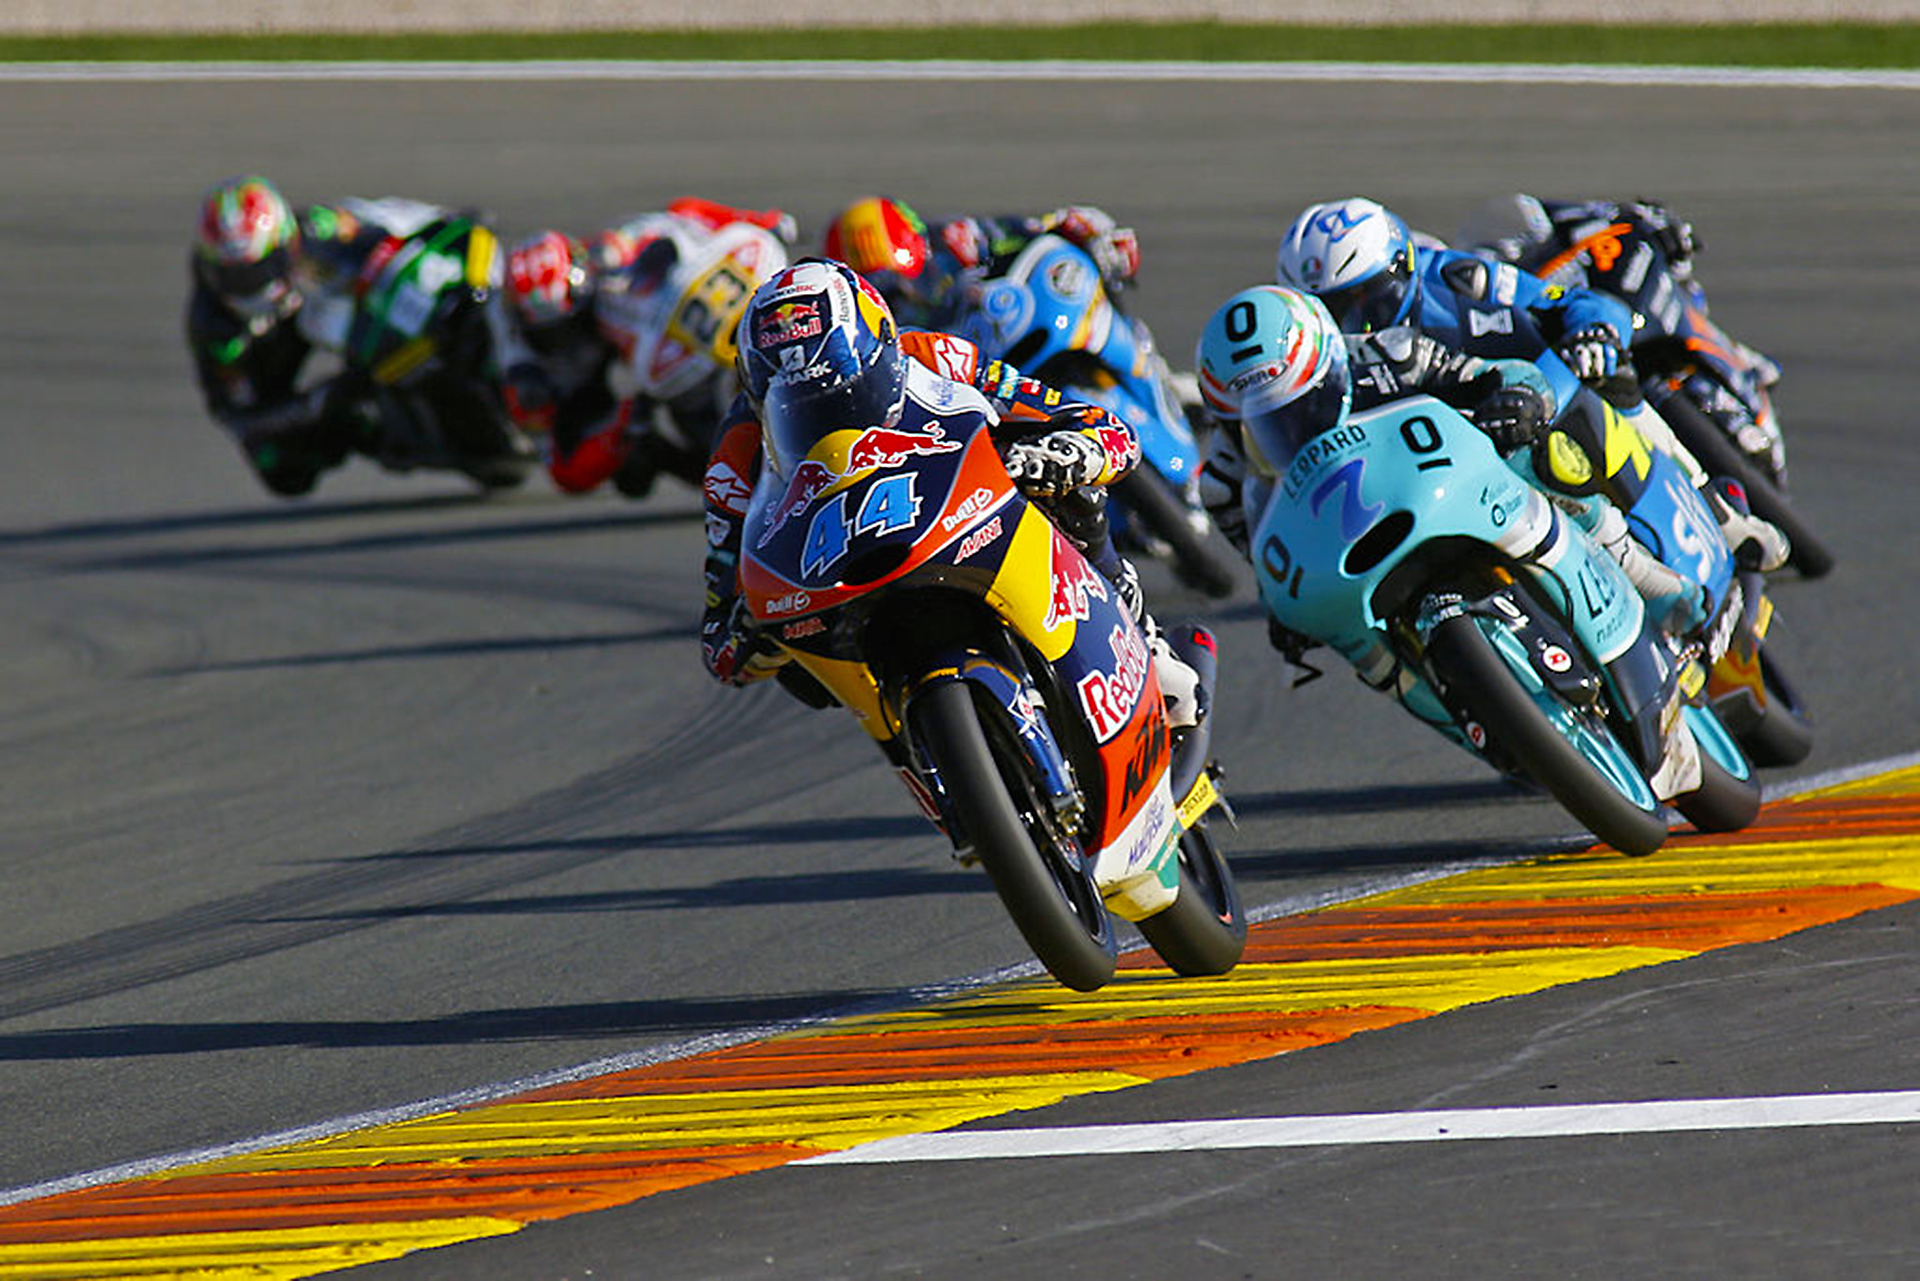 Miguel Oliveira leading the pack. Round of the Moto3 World Championship